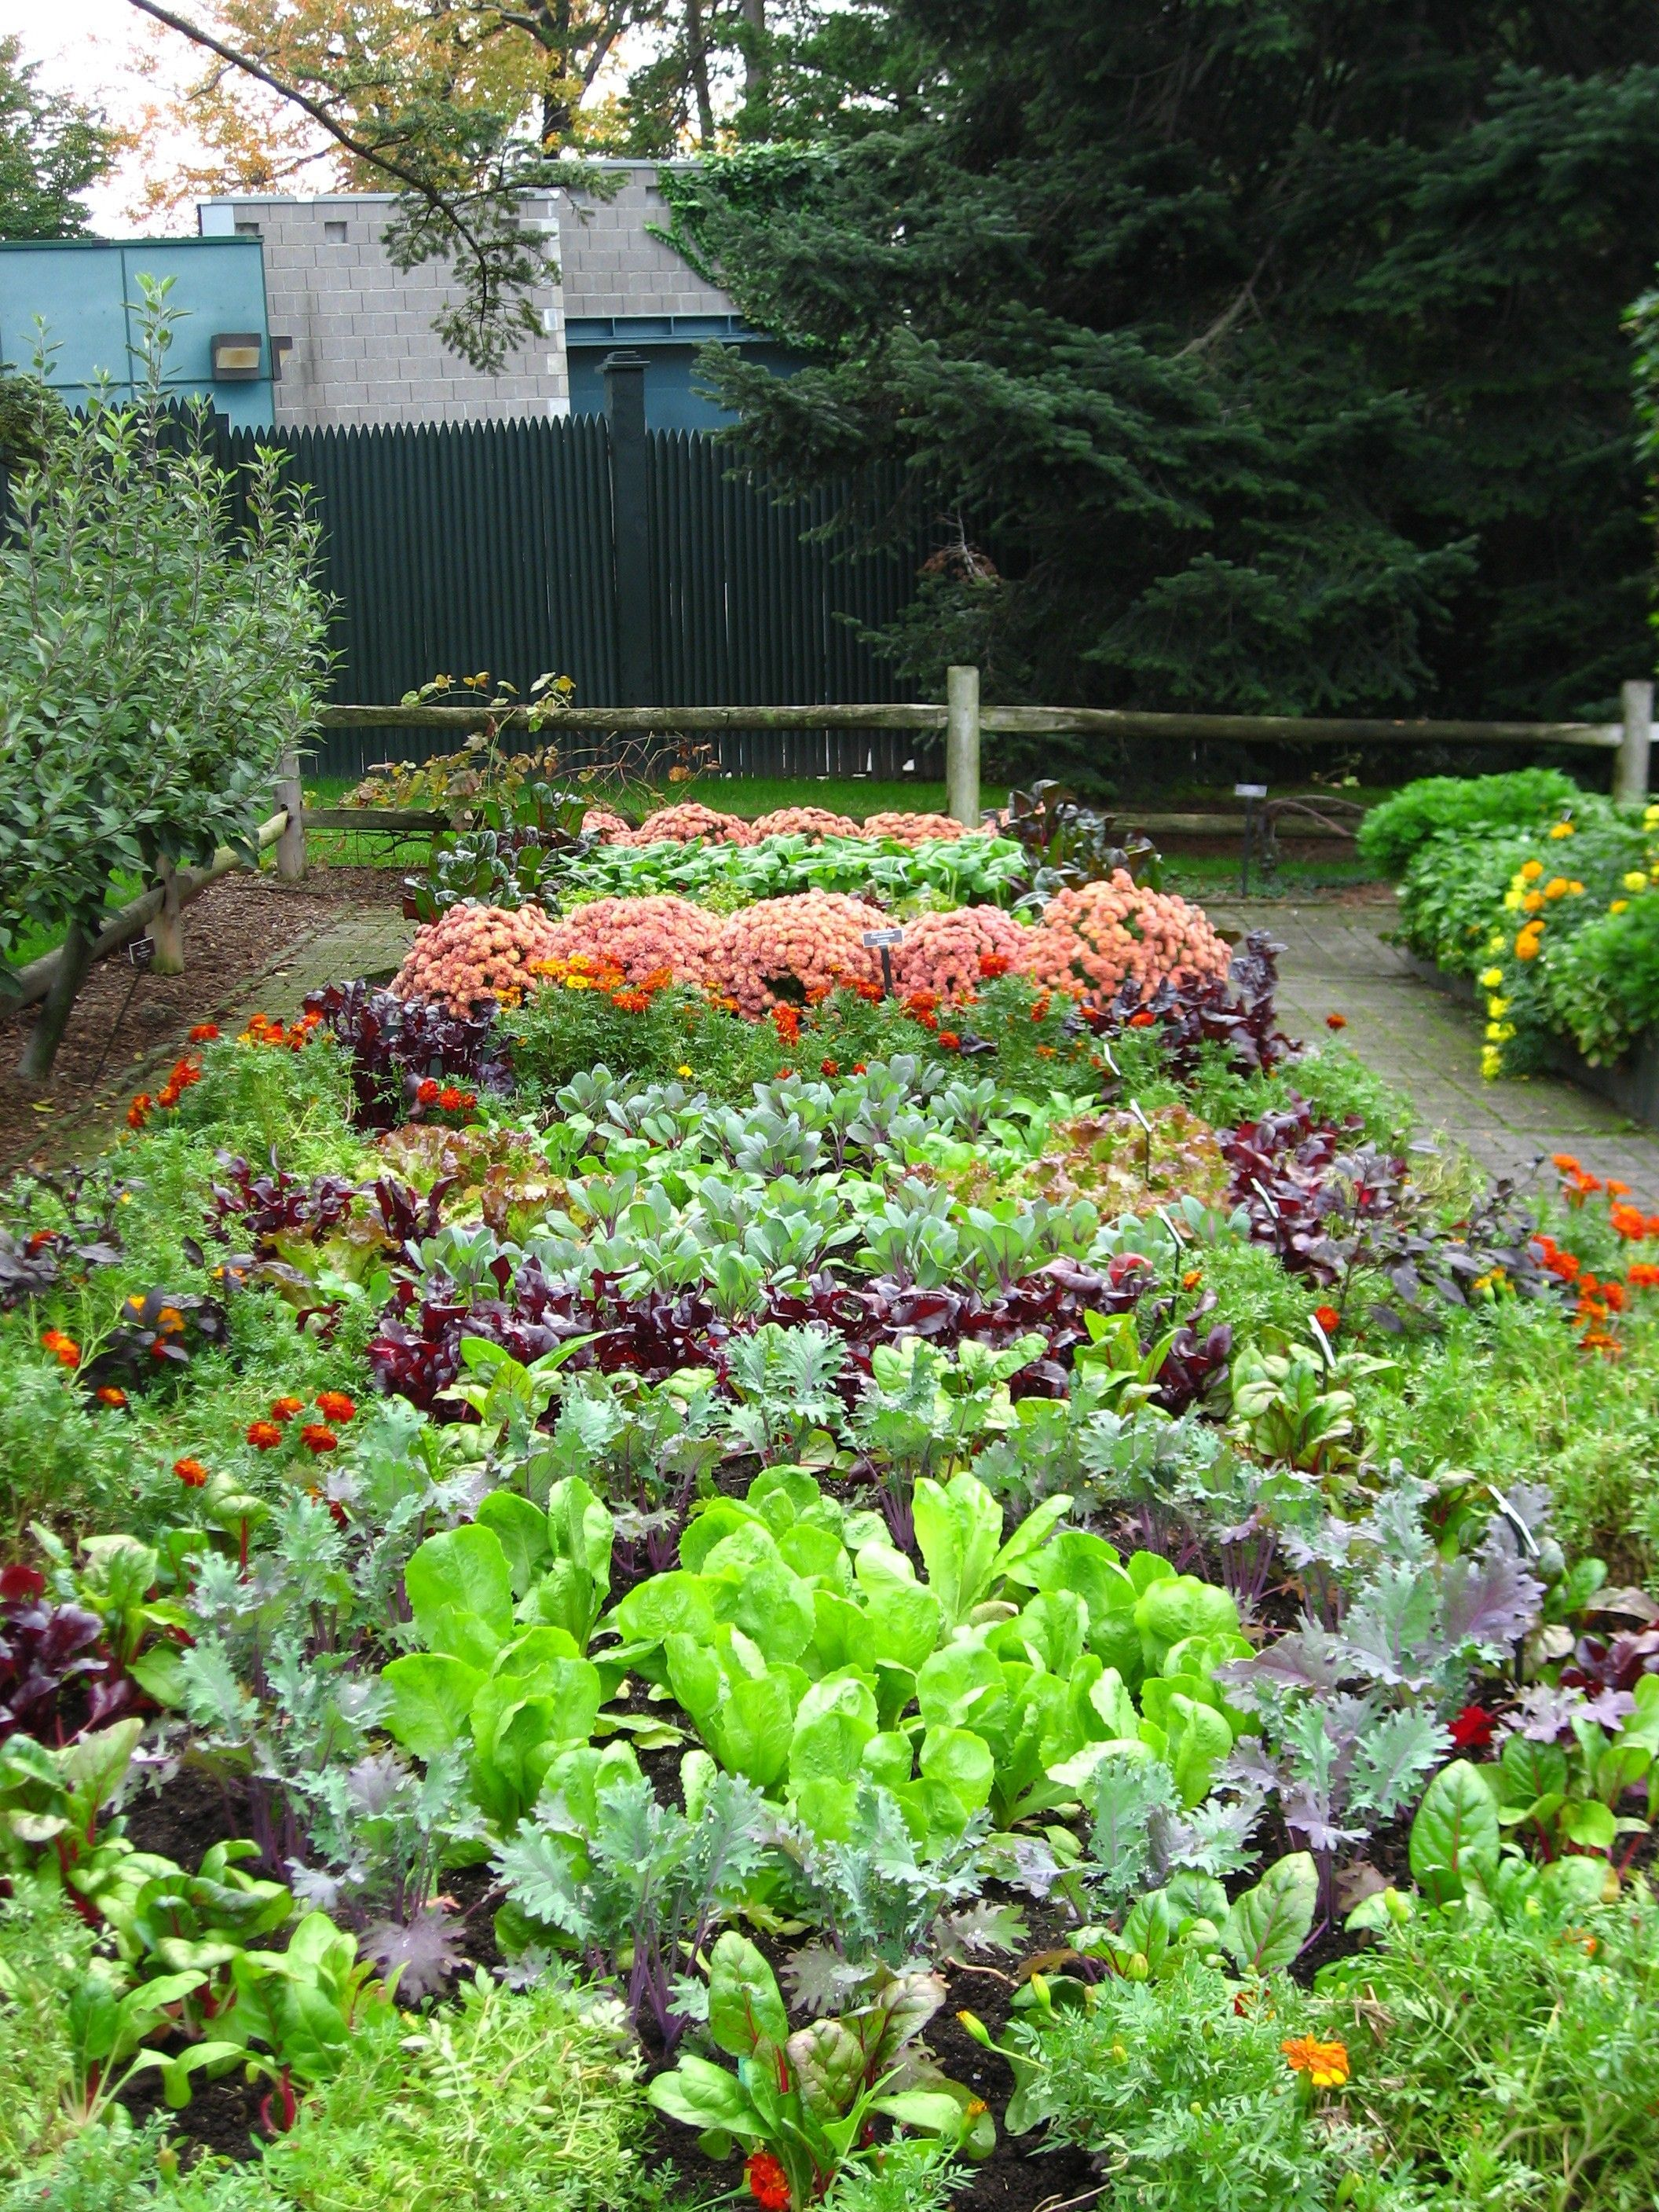 Blend A Variety Of Vegetables Together In A Veggie Garden To Create An  Edible Work Of